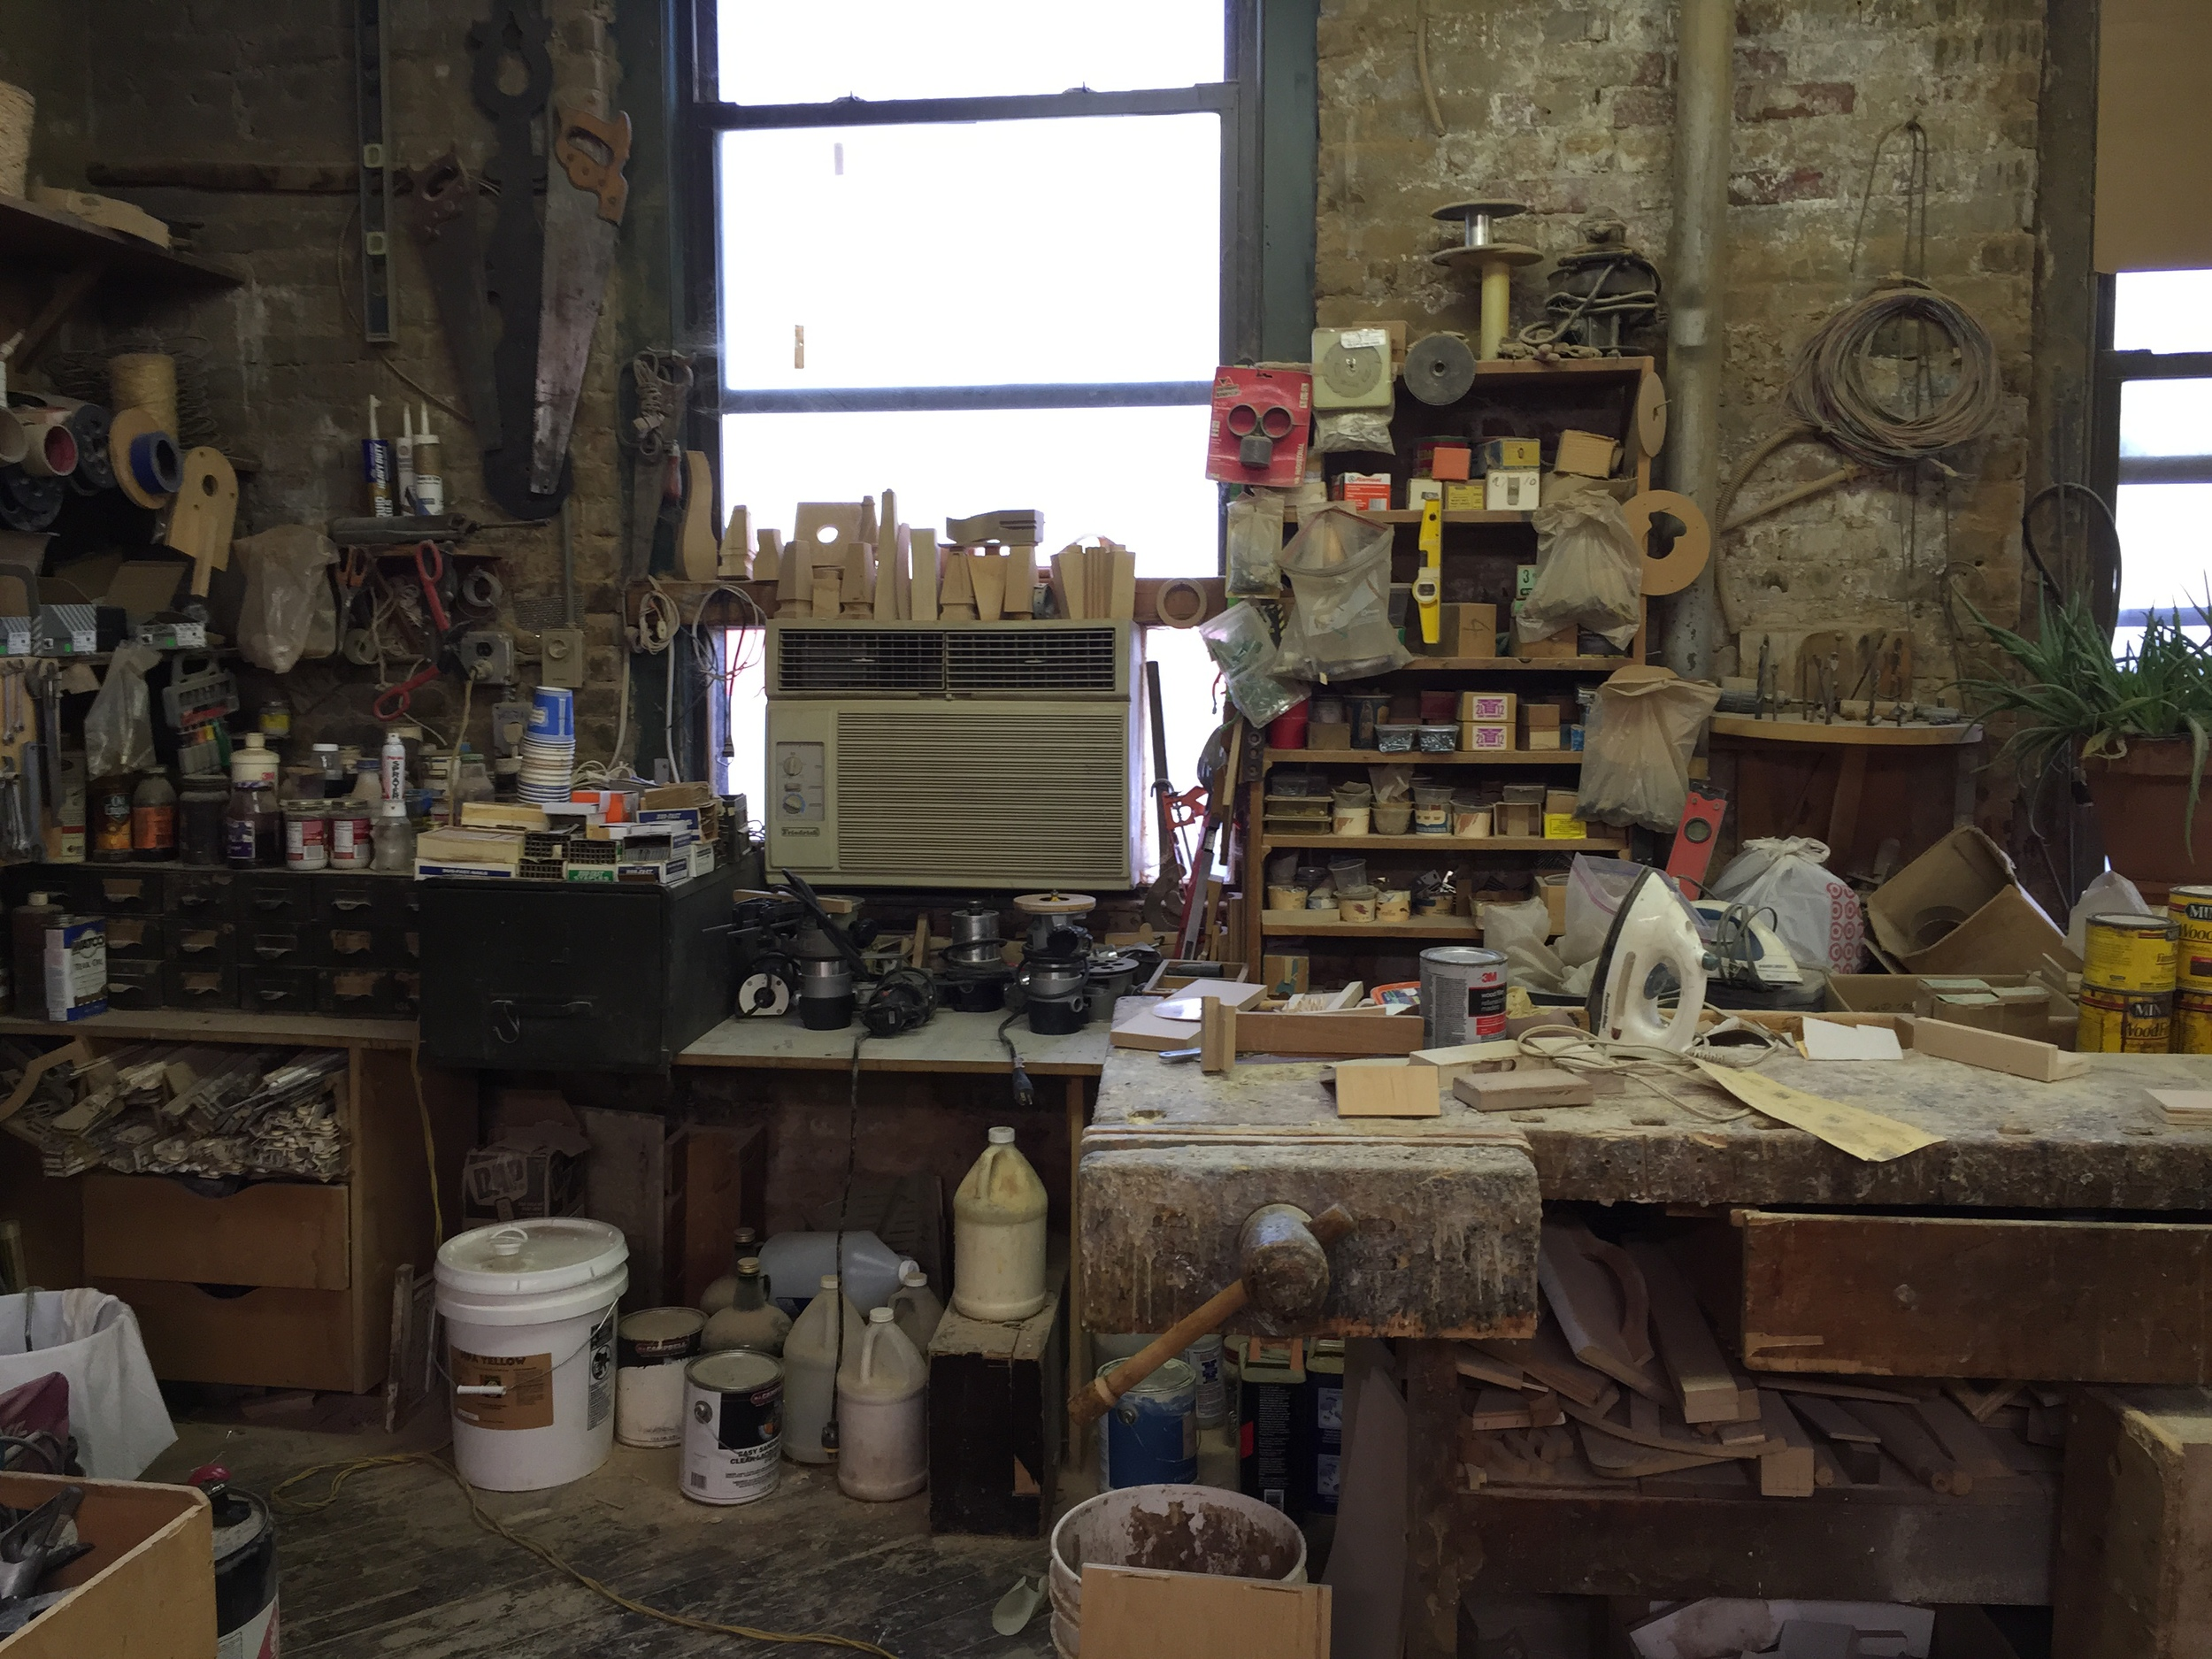 This area of his shop shows a well worn workbench, and evidence of year upon year of collecting tools, hardware and the paraphernalia required to make each piece of his handmade furniture.